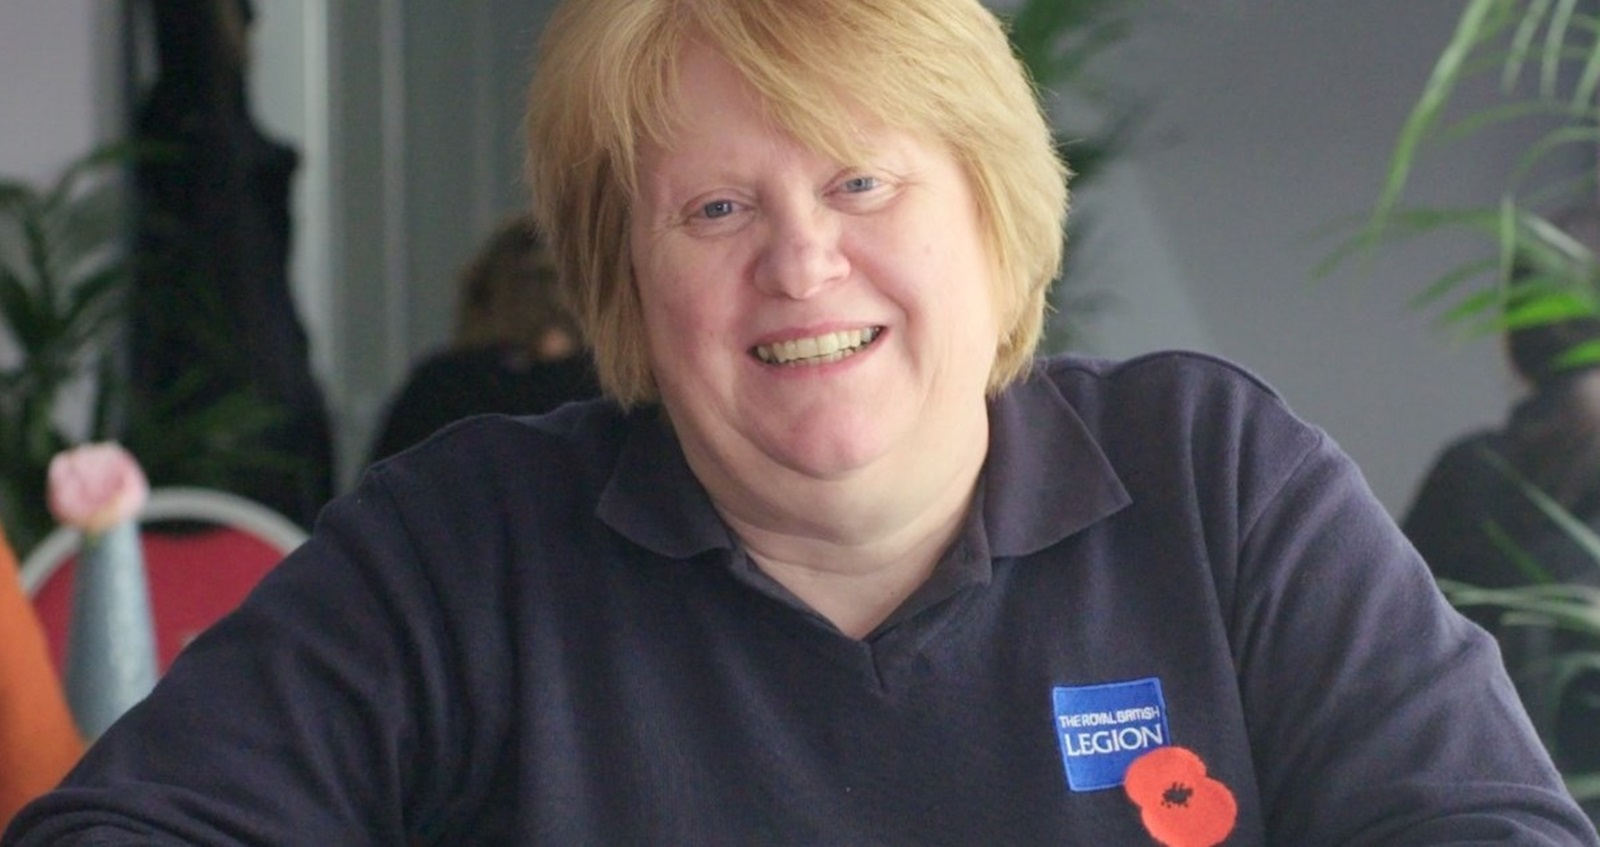 Royal British Legion advice and information team